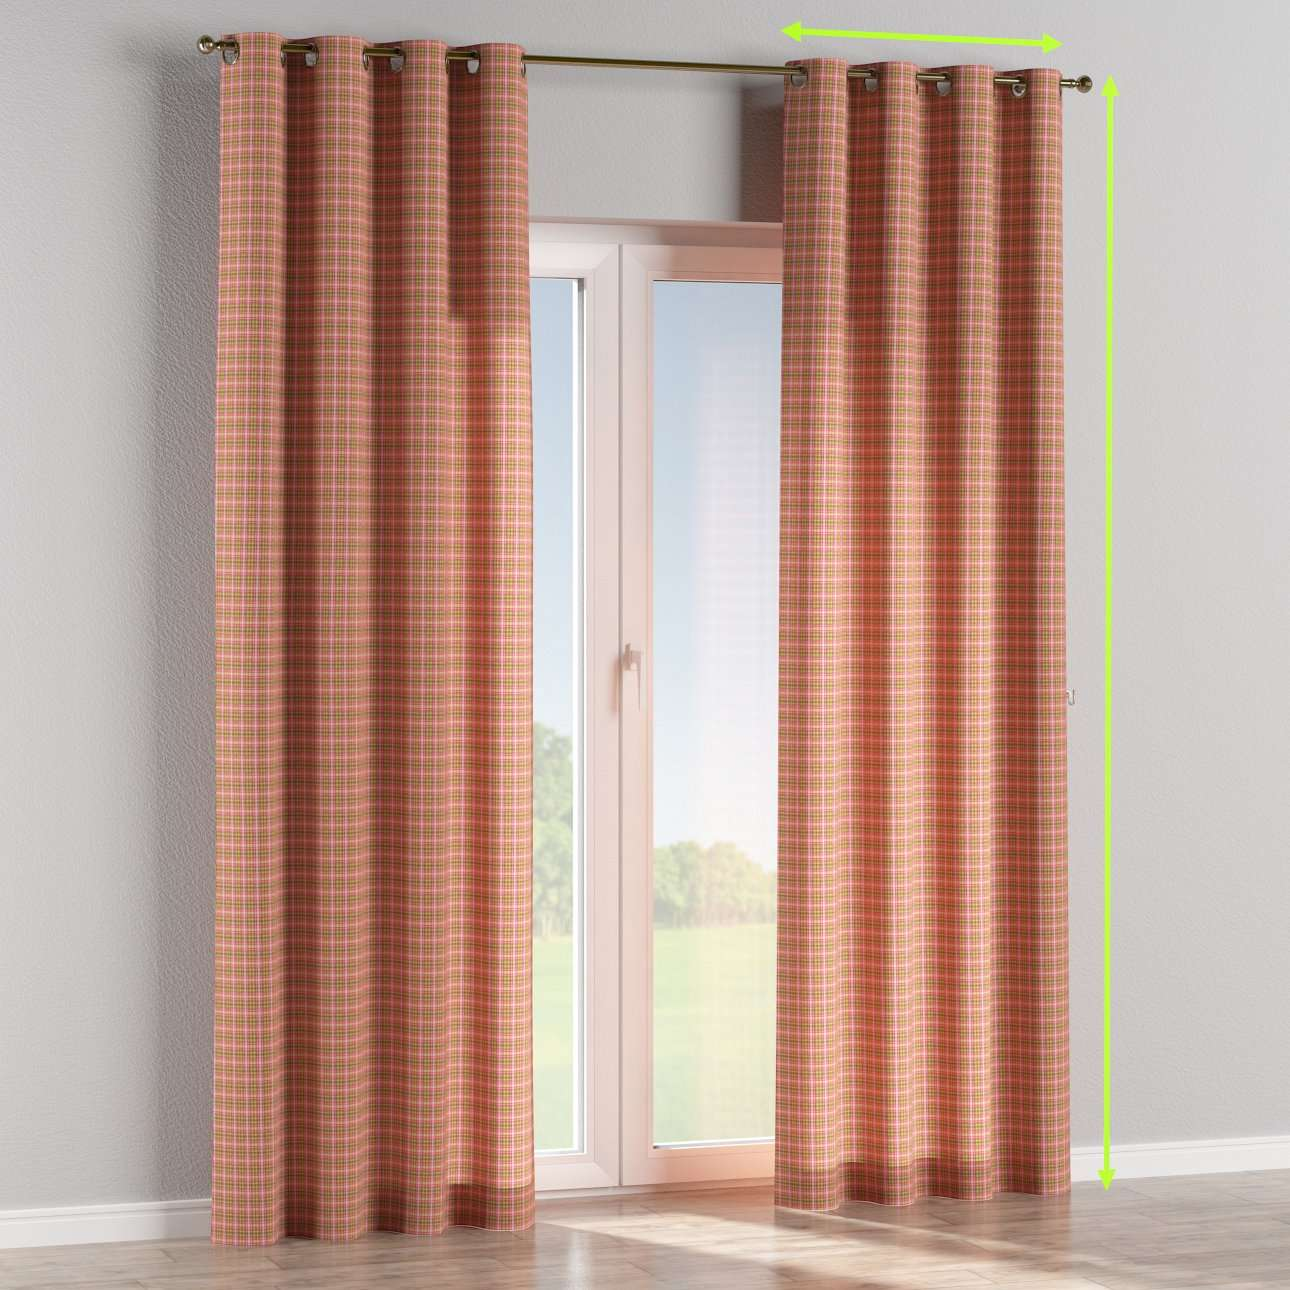 Eyelet curtains in collection Bristol, fabric: 126-25